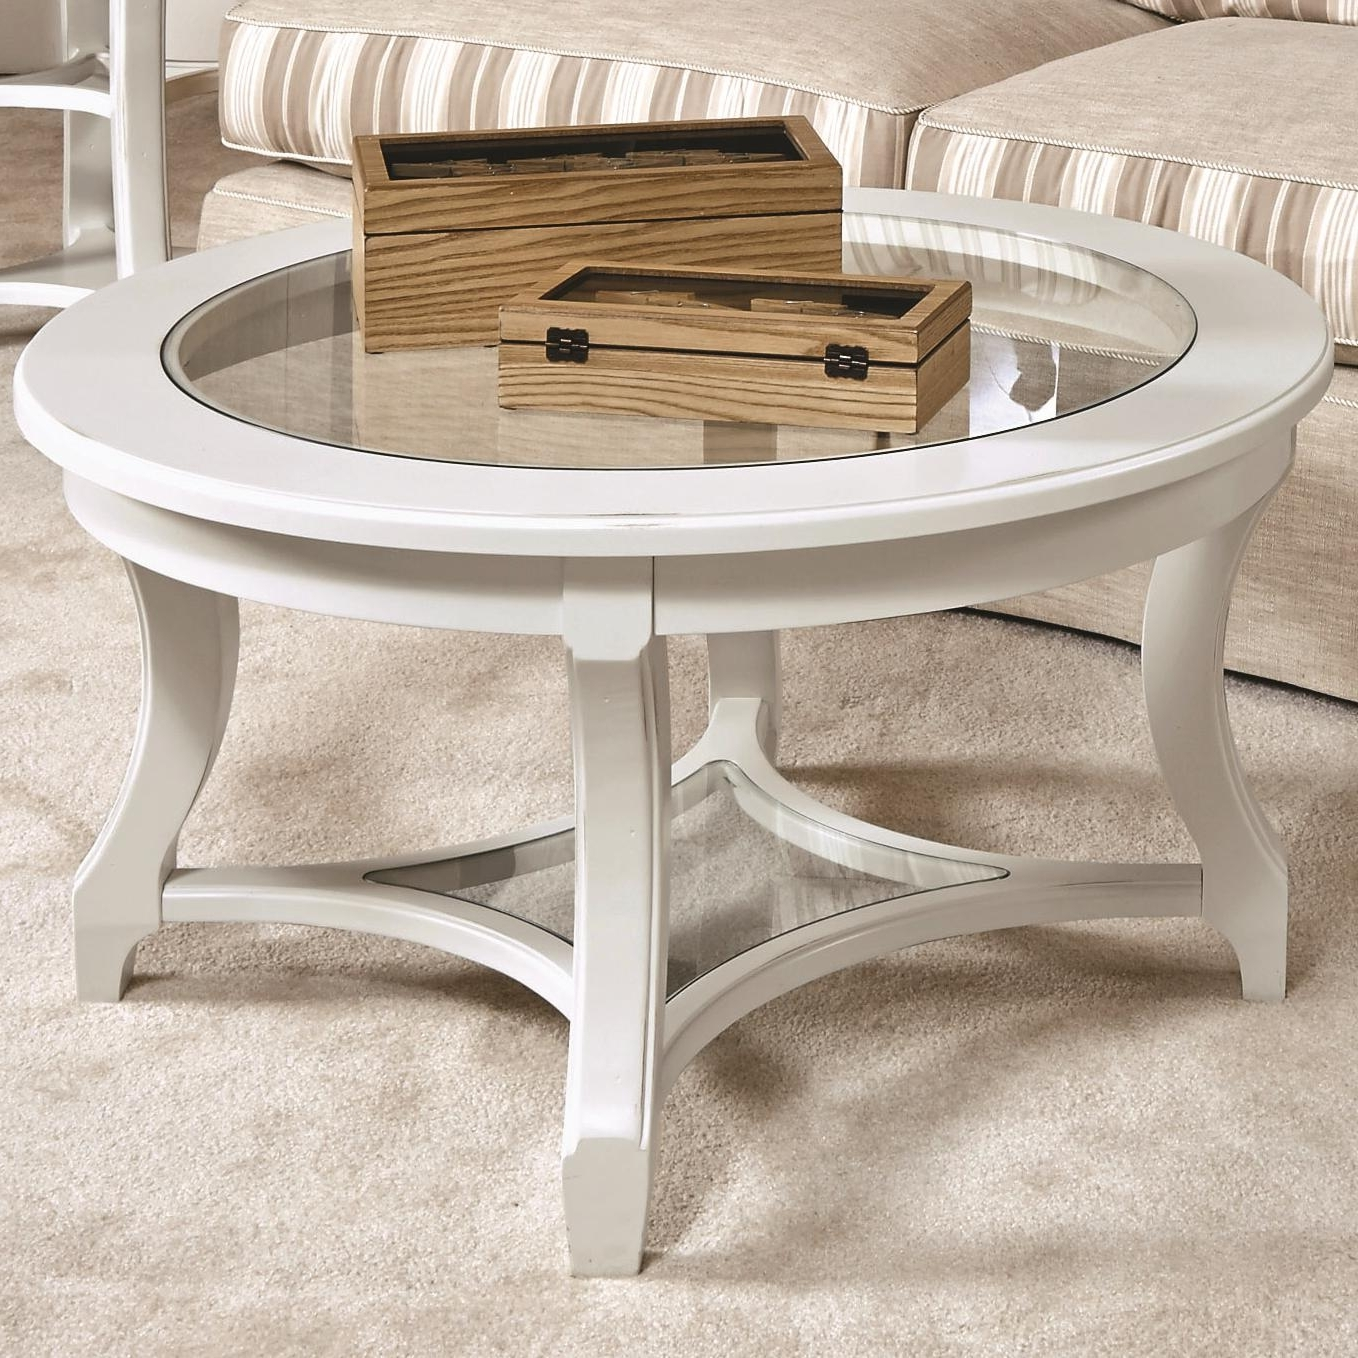 Most Recent Haven Coffee Tables Pertaining To American Drew Lynn Haven Round Glass Cocktail Table With Lower Glass (View 20 of 20)